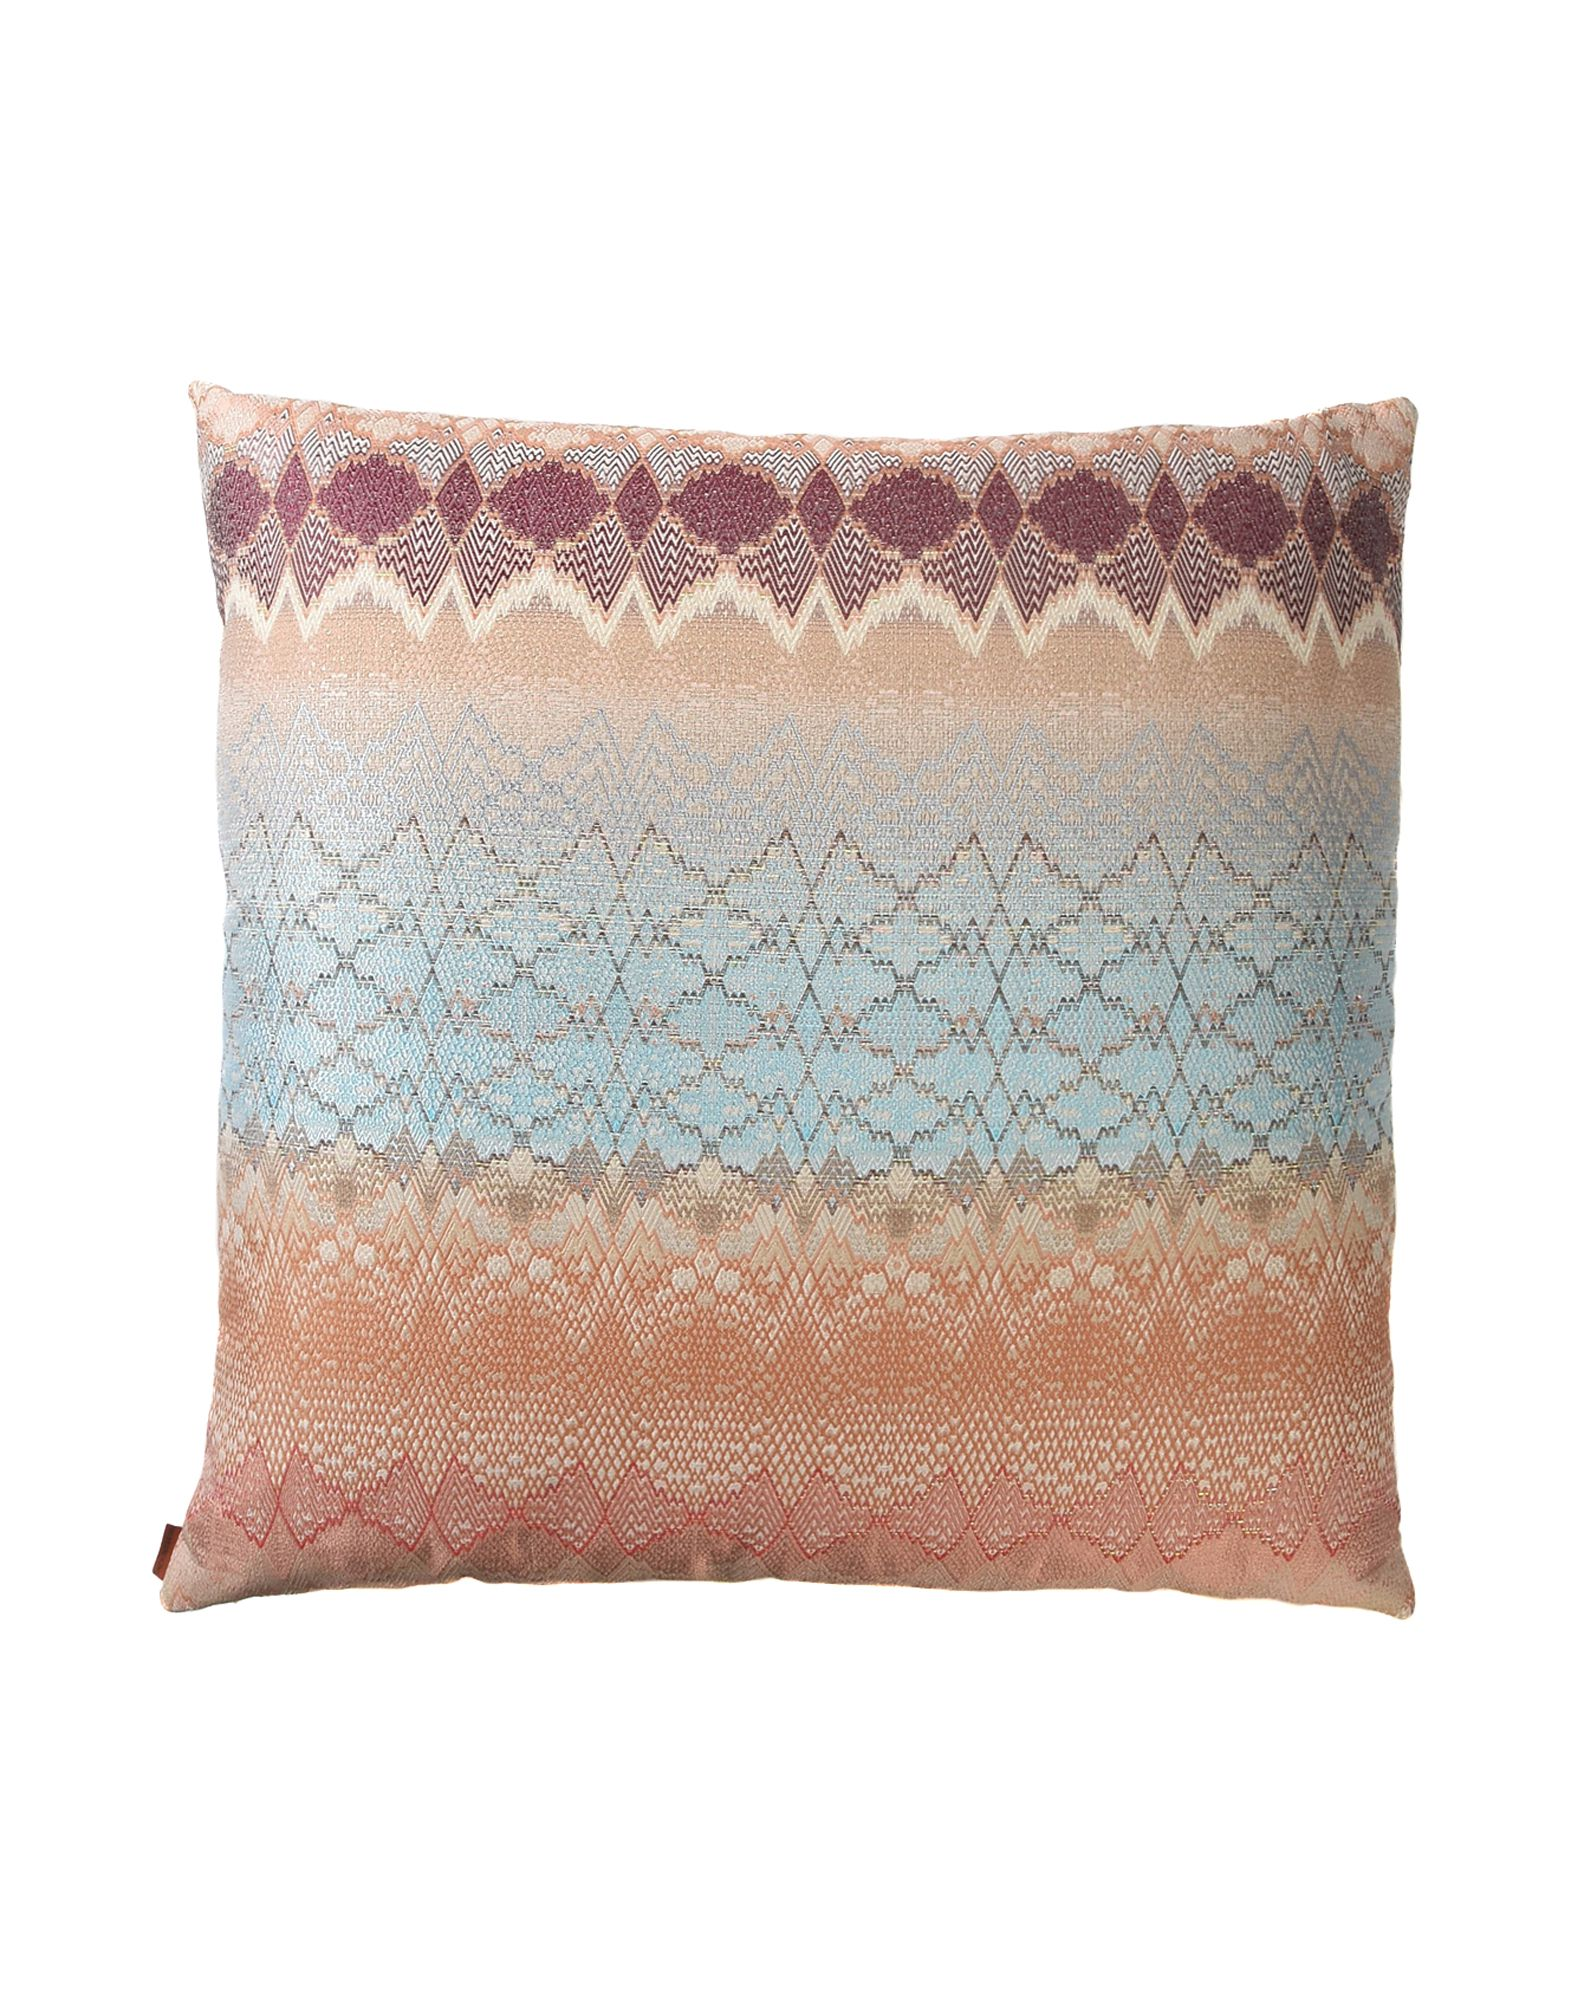 missoni home tbilisi  pillows  designart missoni home online on  - missoni home tbilisi  pillows  designart missoni home online on yoox id